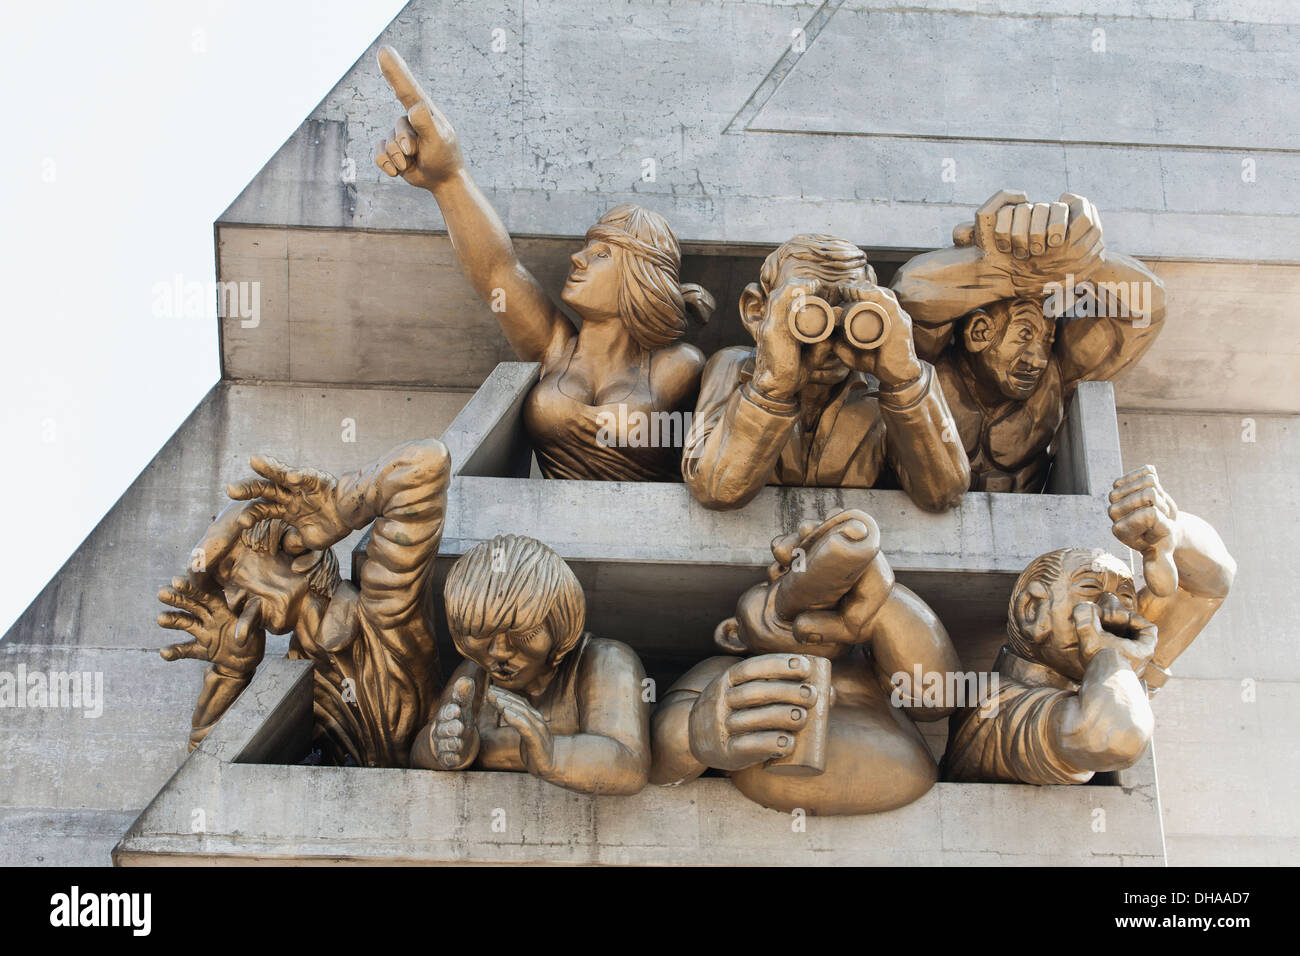 Close Up Of Sculpture On The Outside Of The Skydome; Toronto, Ontario, Canada - Stock Image